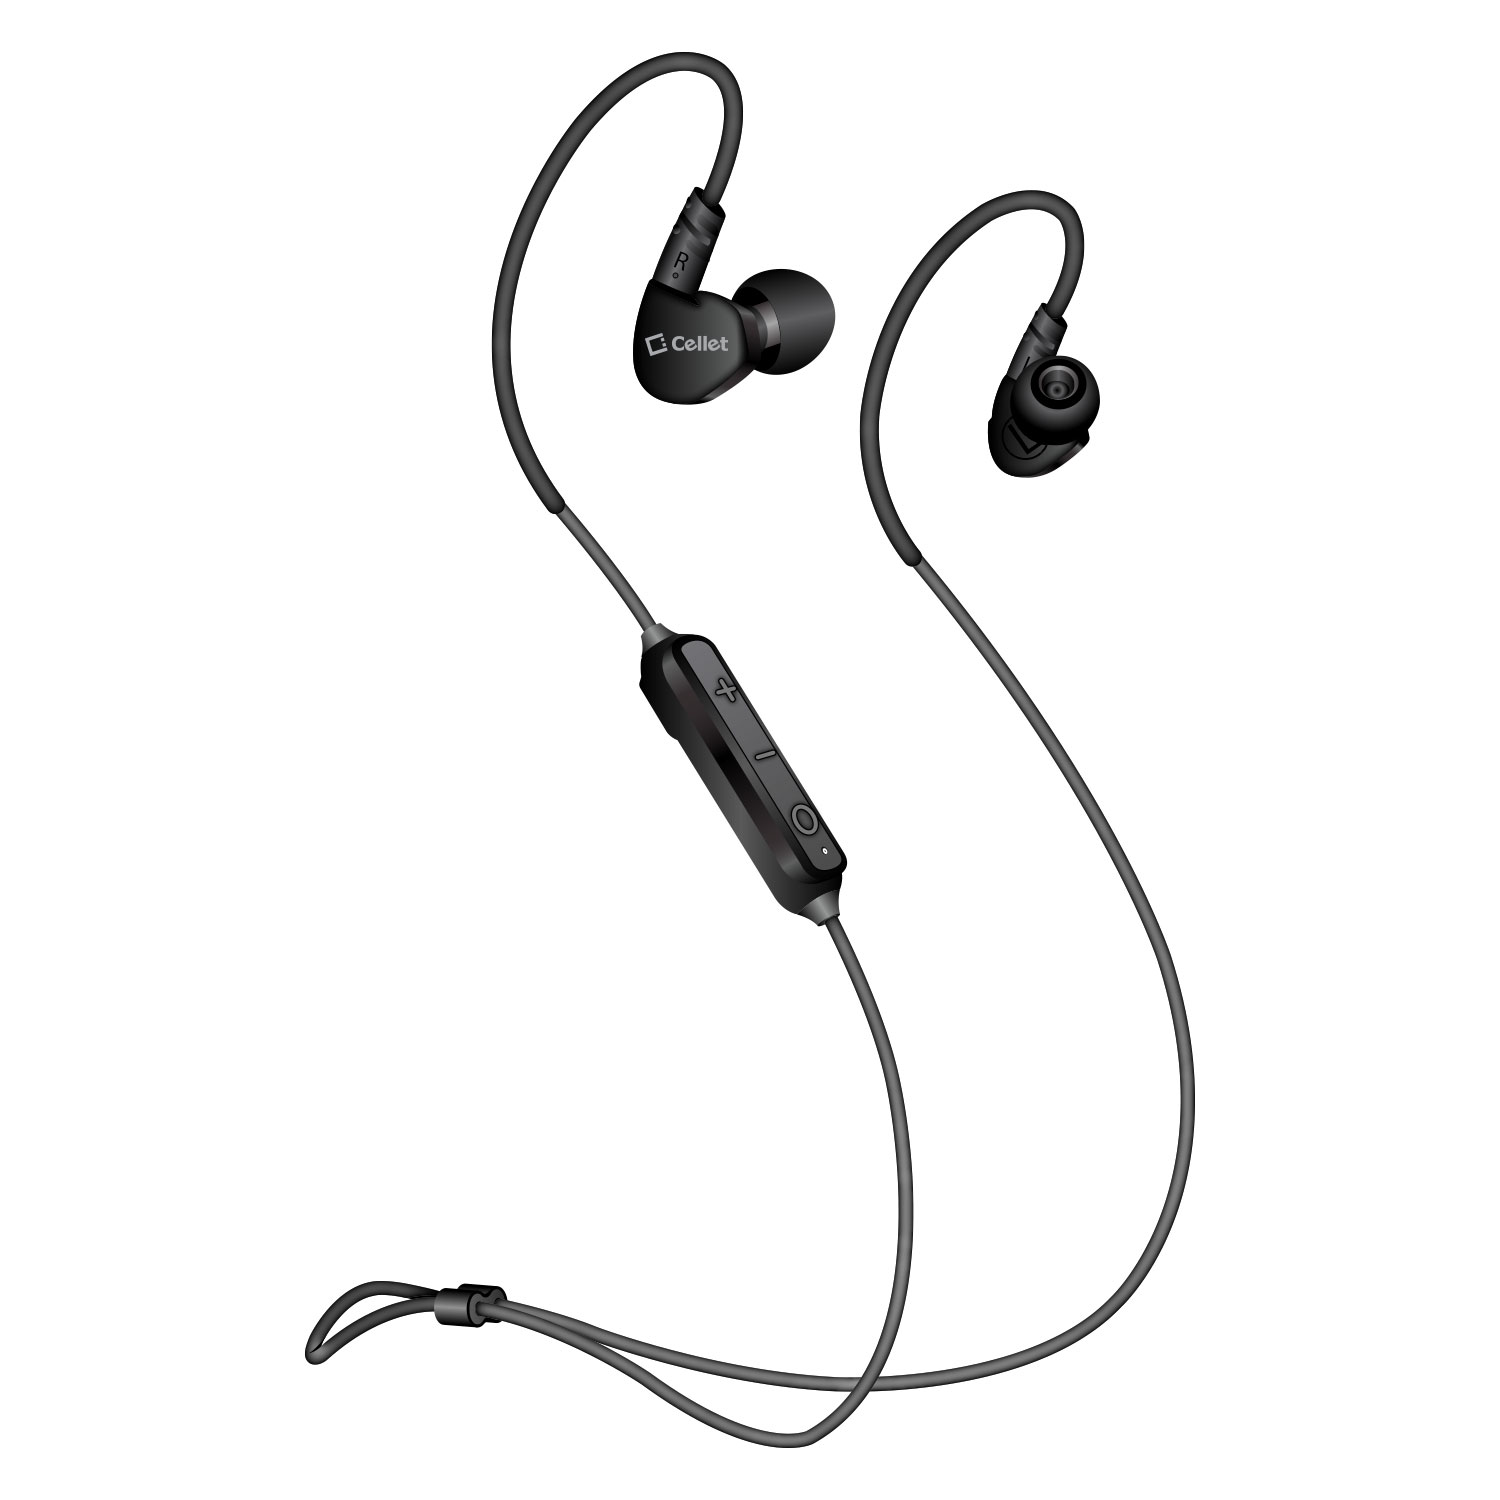 ZTE Blade V8 Pro Bluetooth V5.0 Stereo Earphones Sport Headset Black